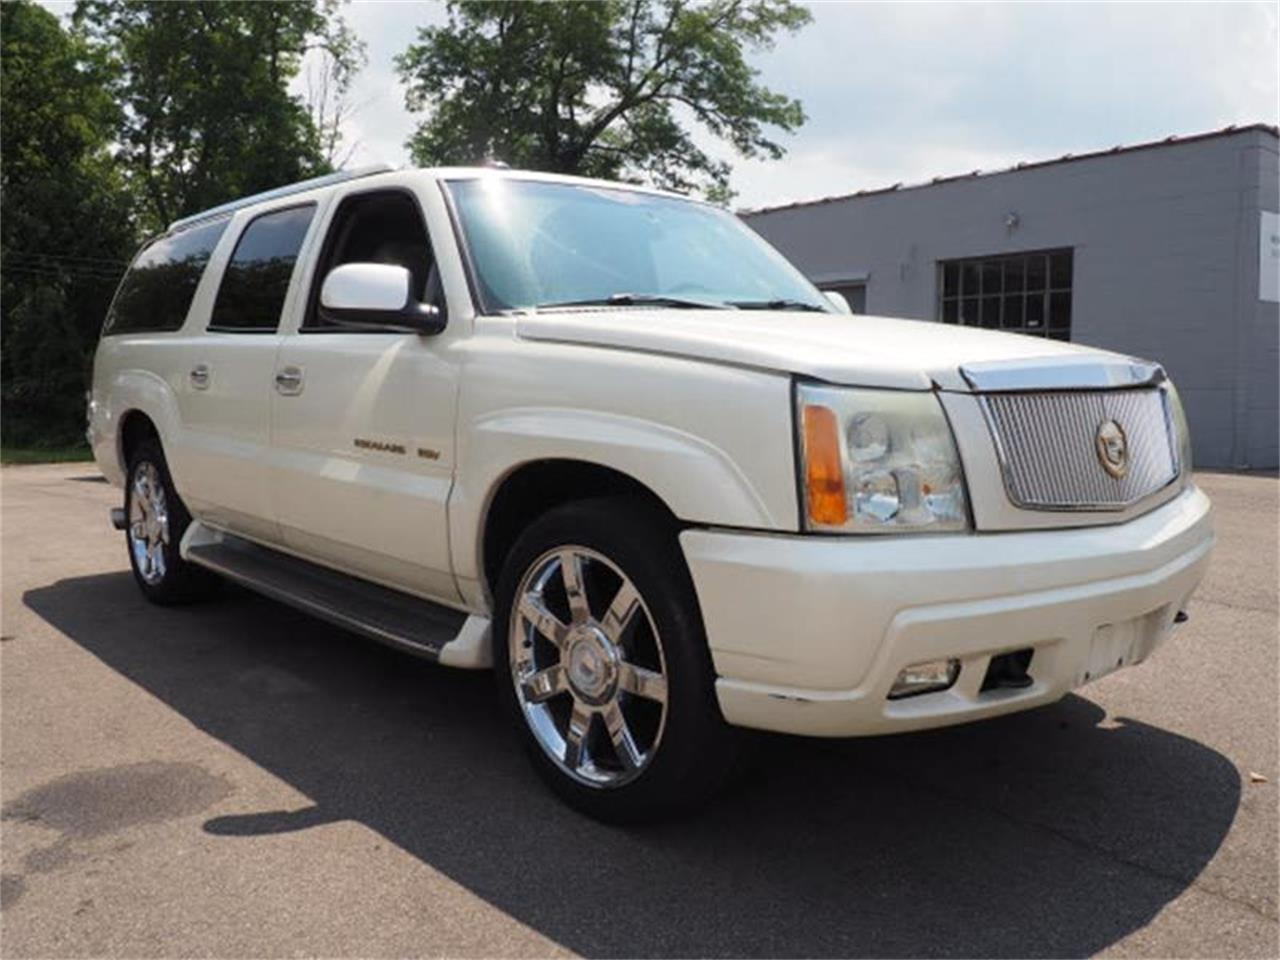 Large Picture of 2003 Escalade located in Ohio - $3,000.00 - MBL6